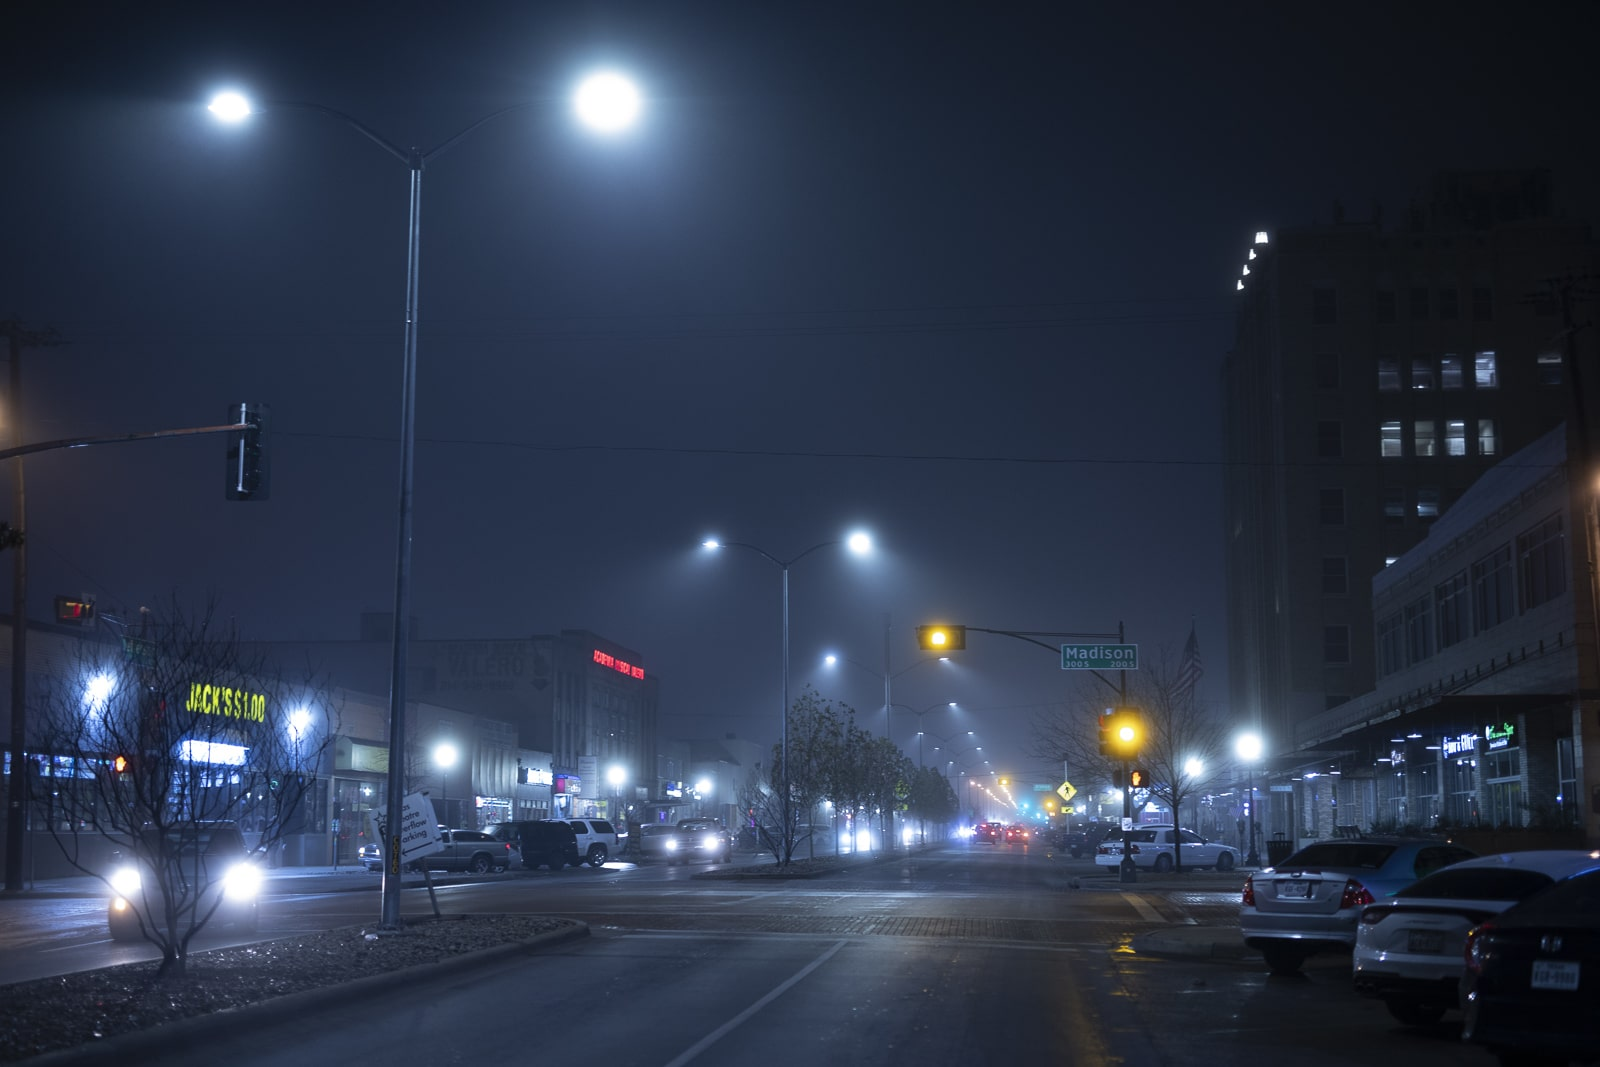 Jefferson Boulevard at Night